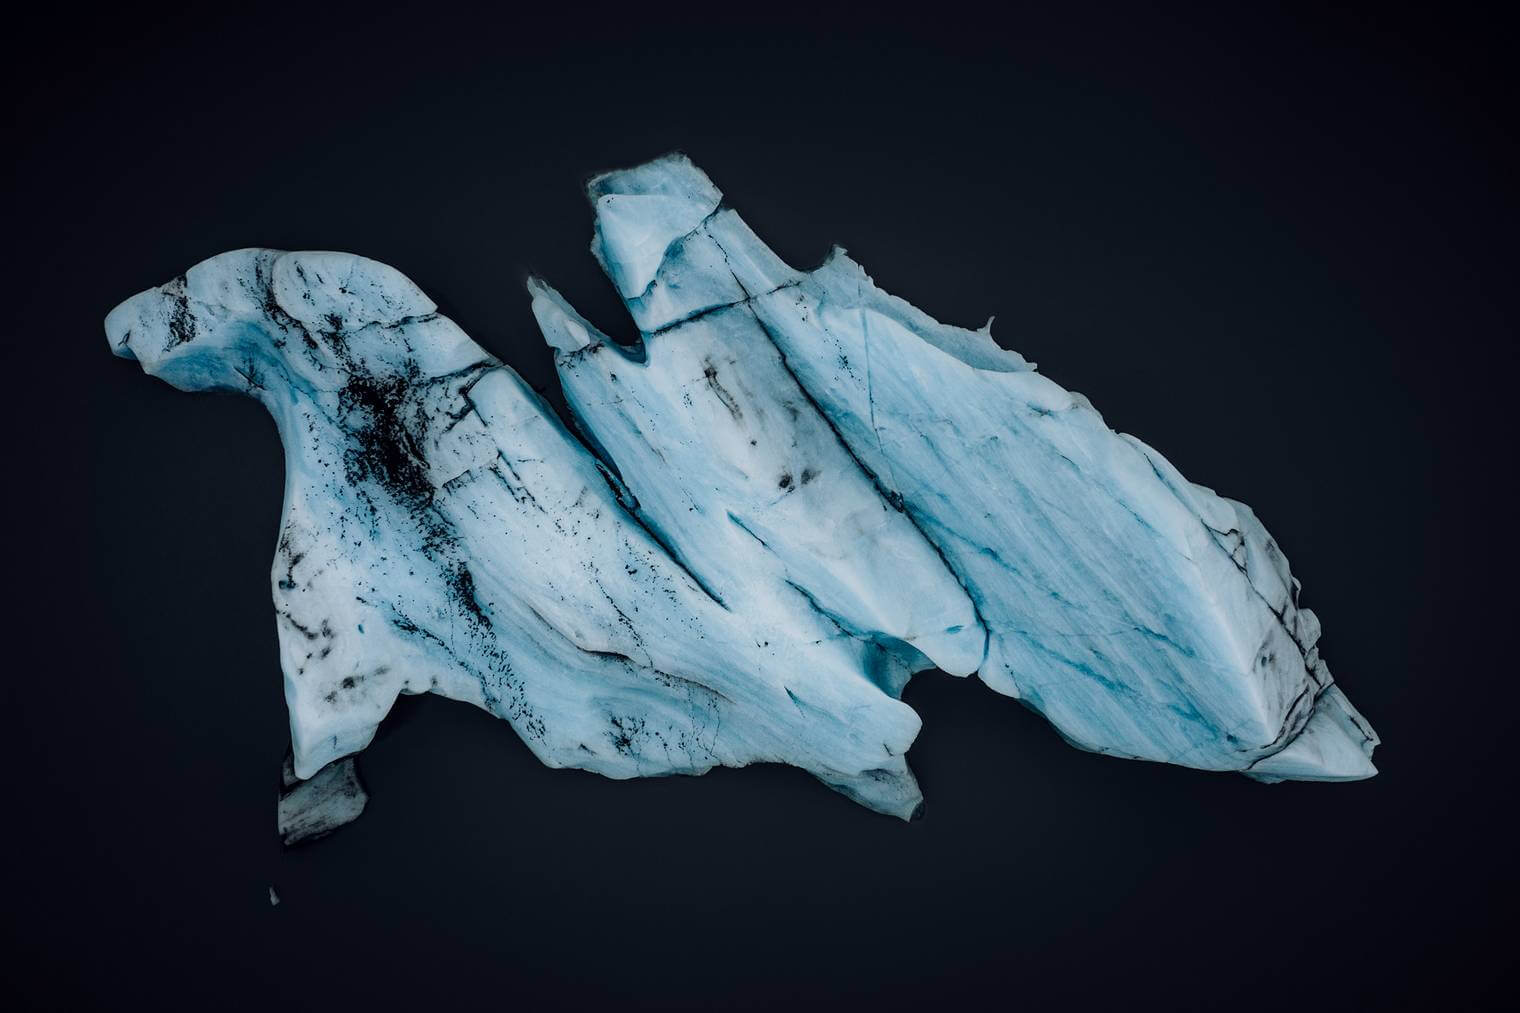 Abstract Iceberg from Drone Perspective